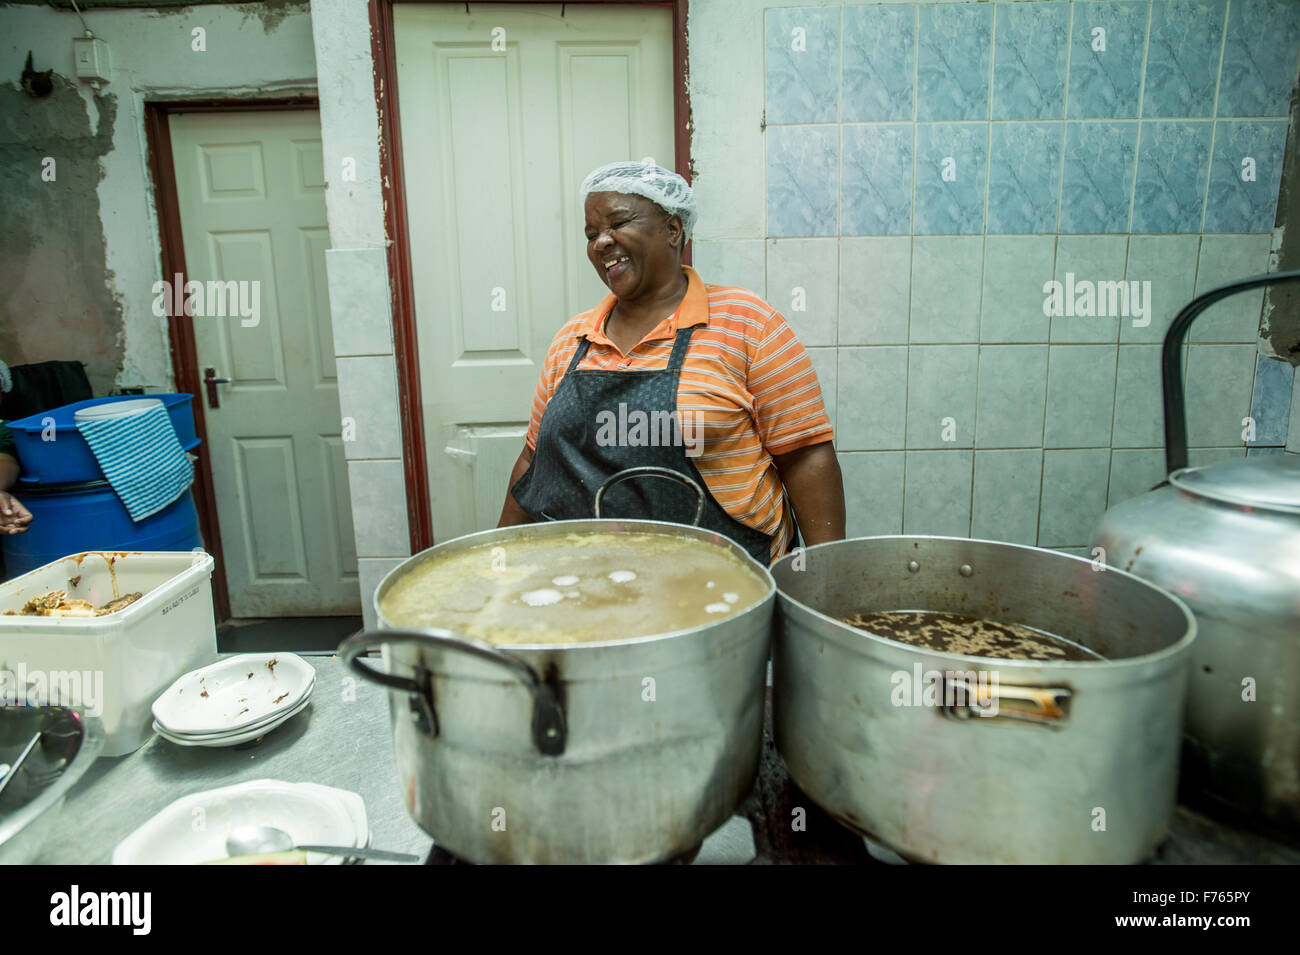 SOWETO, SOUTH AFRICA- Woman at the Chez Alina Restaurant - Stock Image